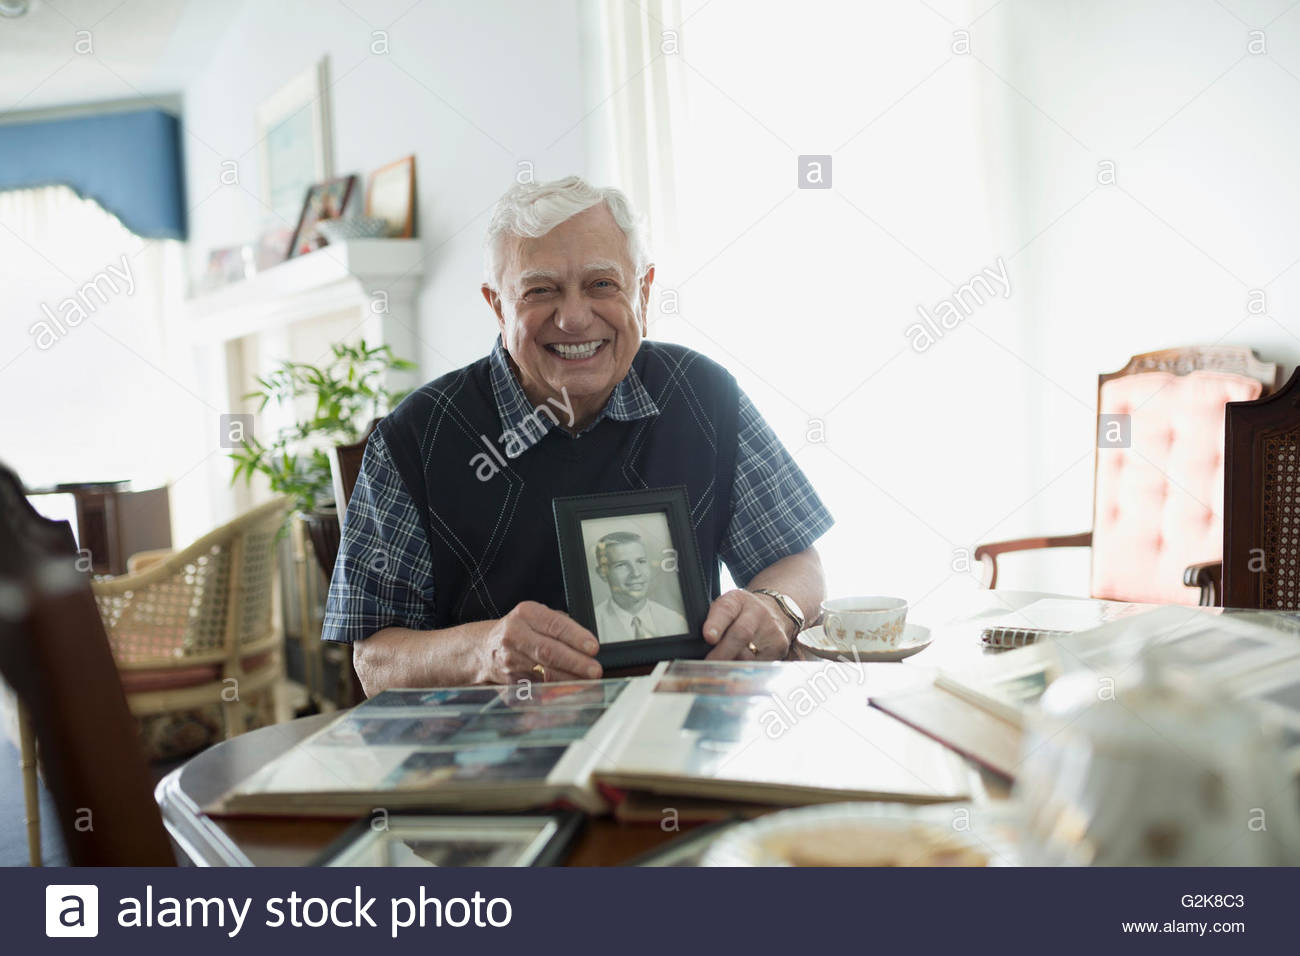 Portrait smiling senior man holding old photograph of his younger self - Stock Image